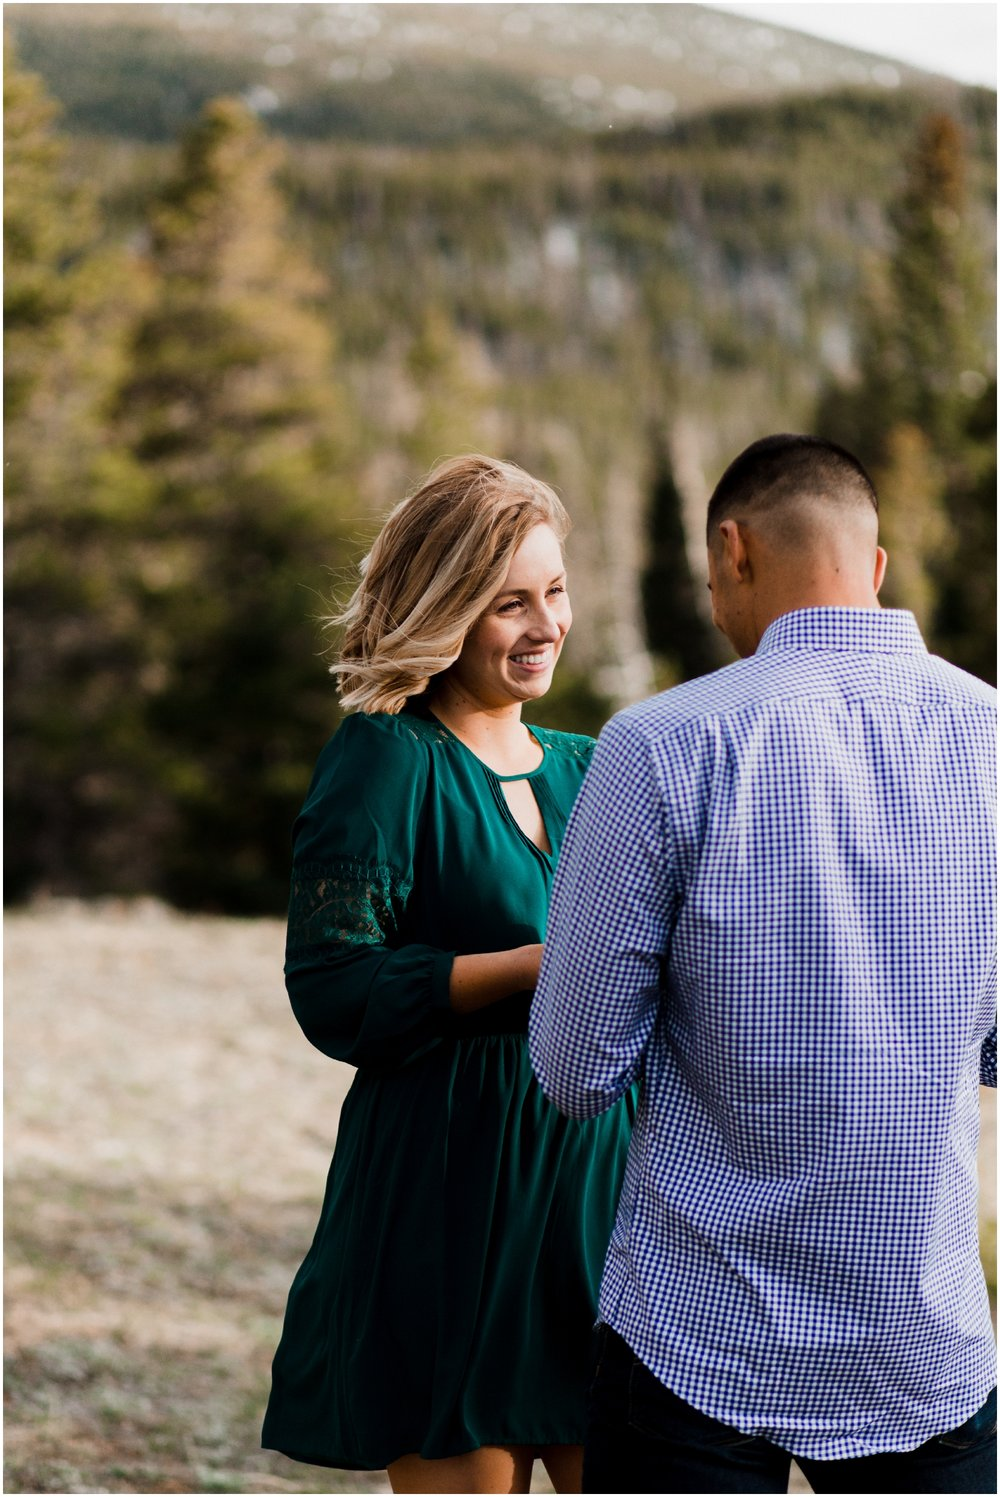 rocky-mountain-national-park-elopement-sprague-lake-colorado-adventure-wedding-photographer_taylor-powers_63.jpg